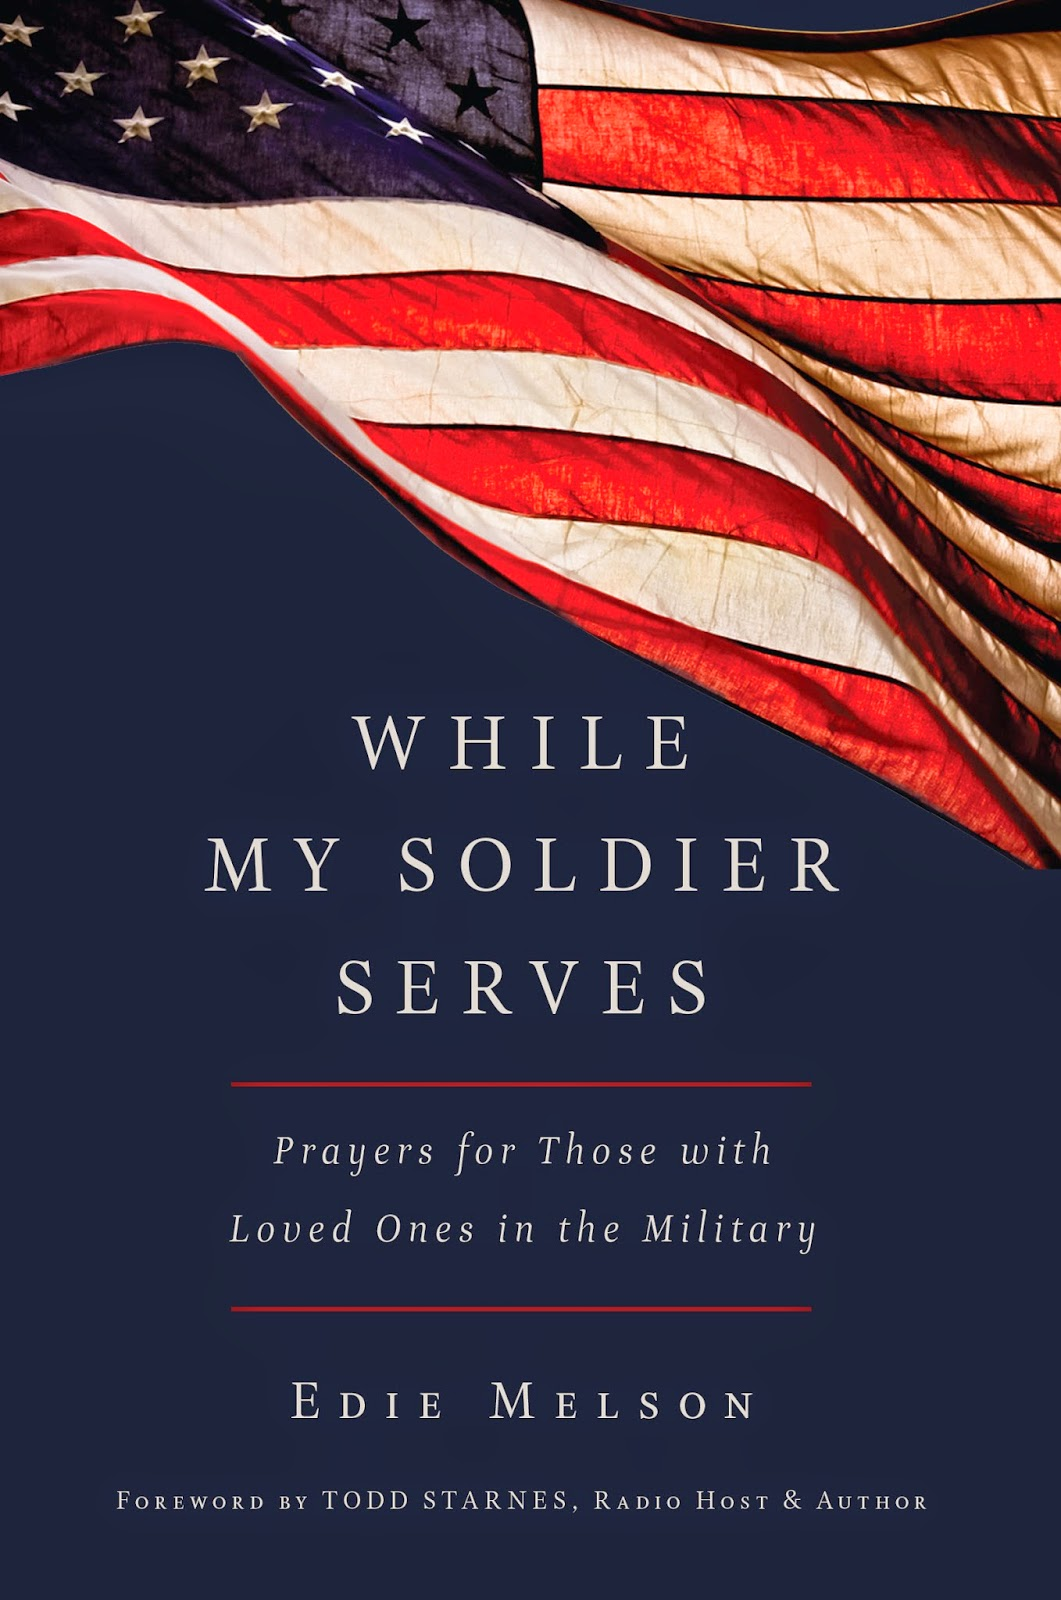 http://www.whilemysoldierserves.com/